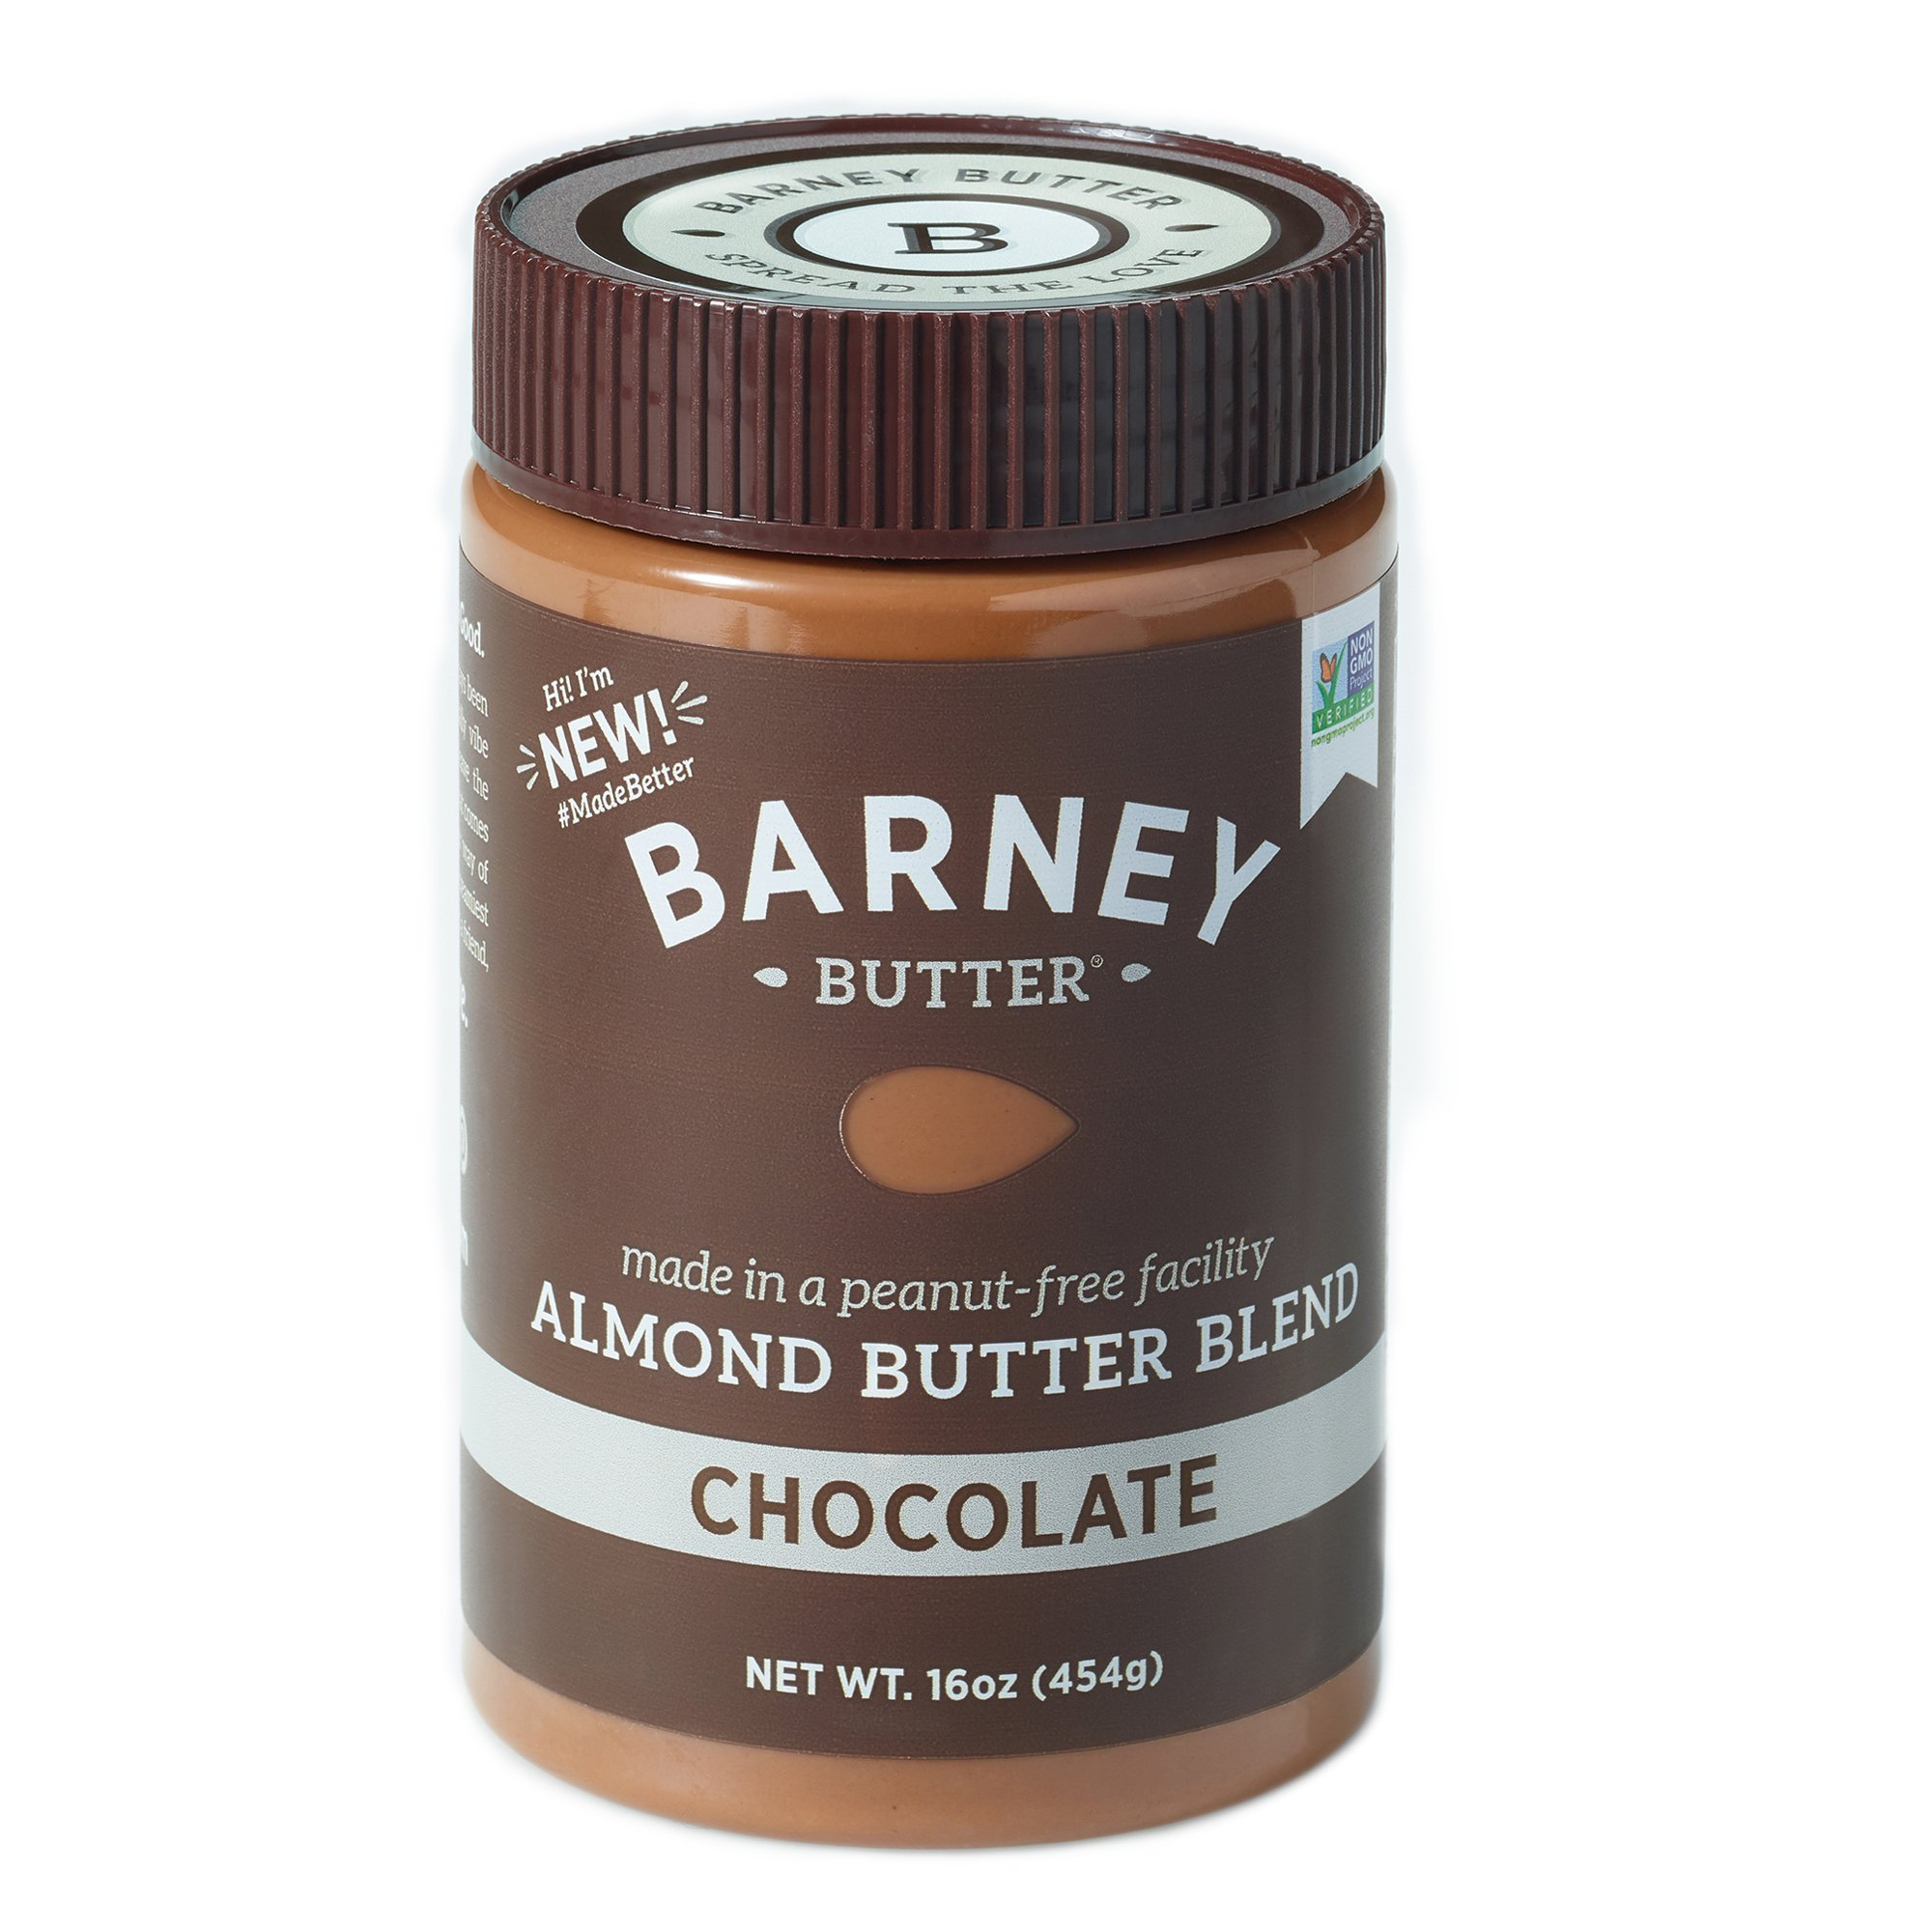 Barney Butter Almond Butter, Chocolate, 16 Ounce